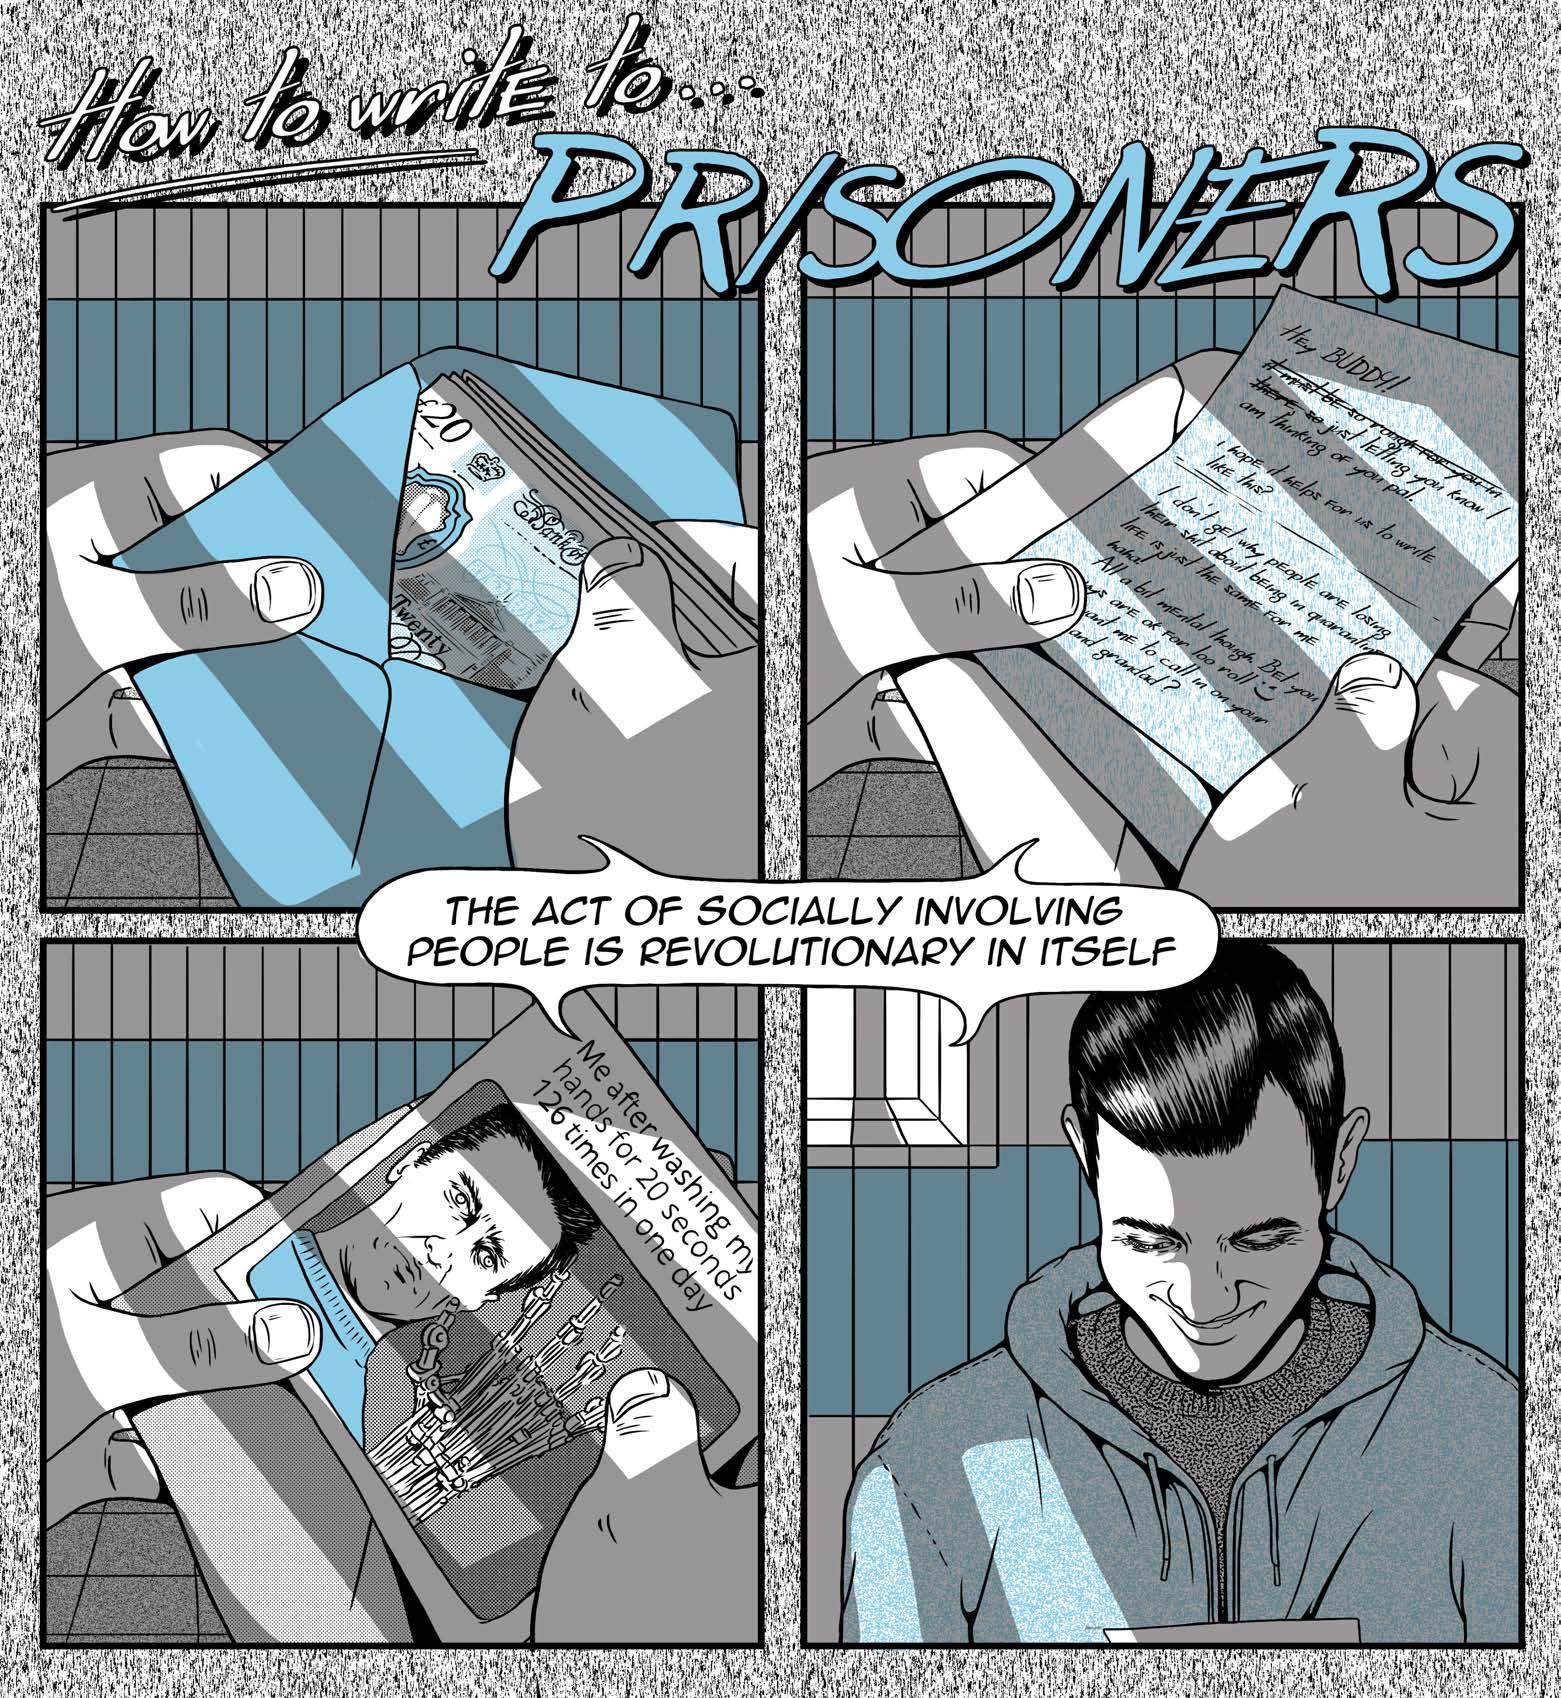 Read story: How to Write to Prisoners